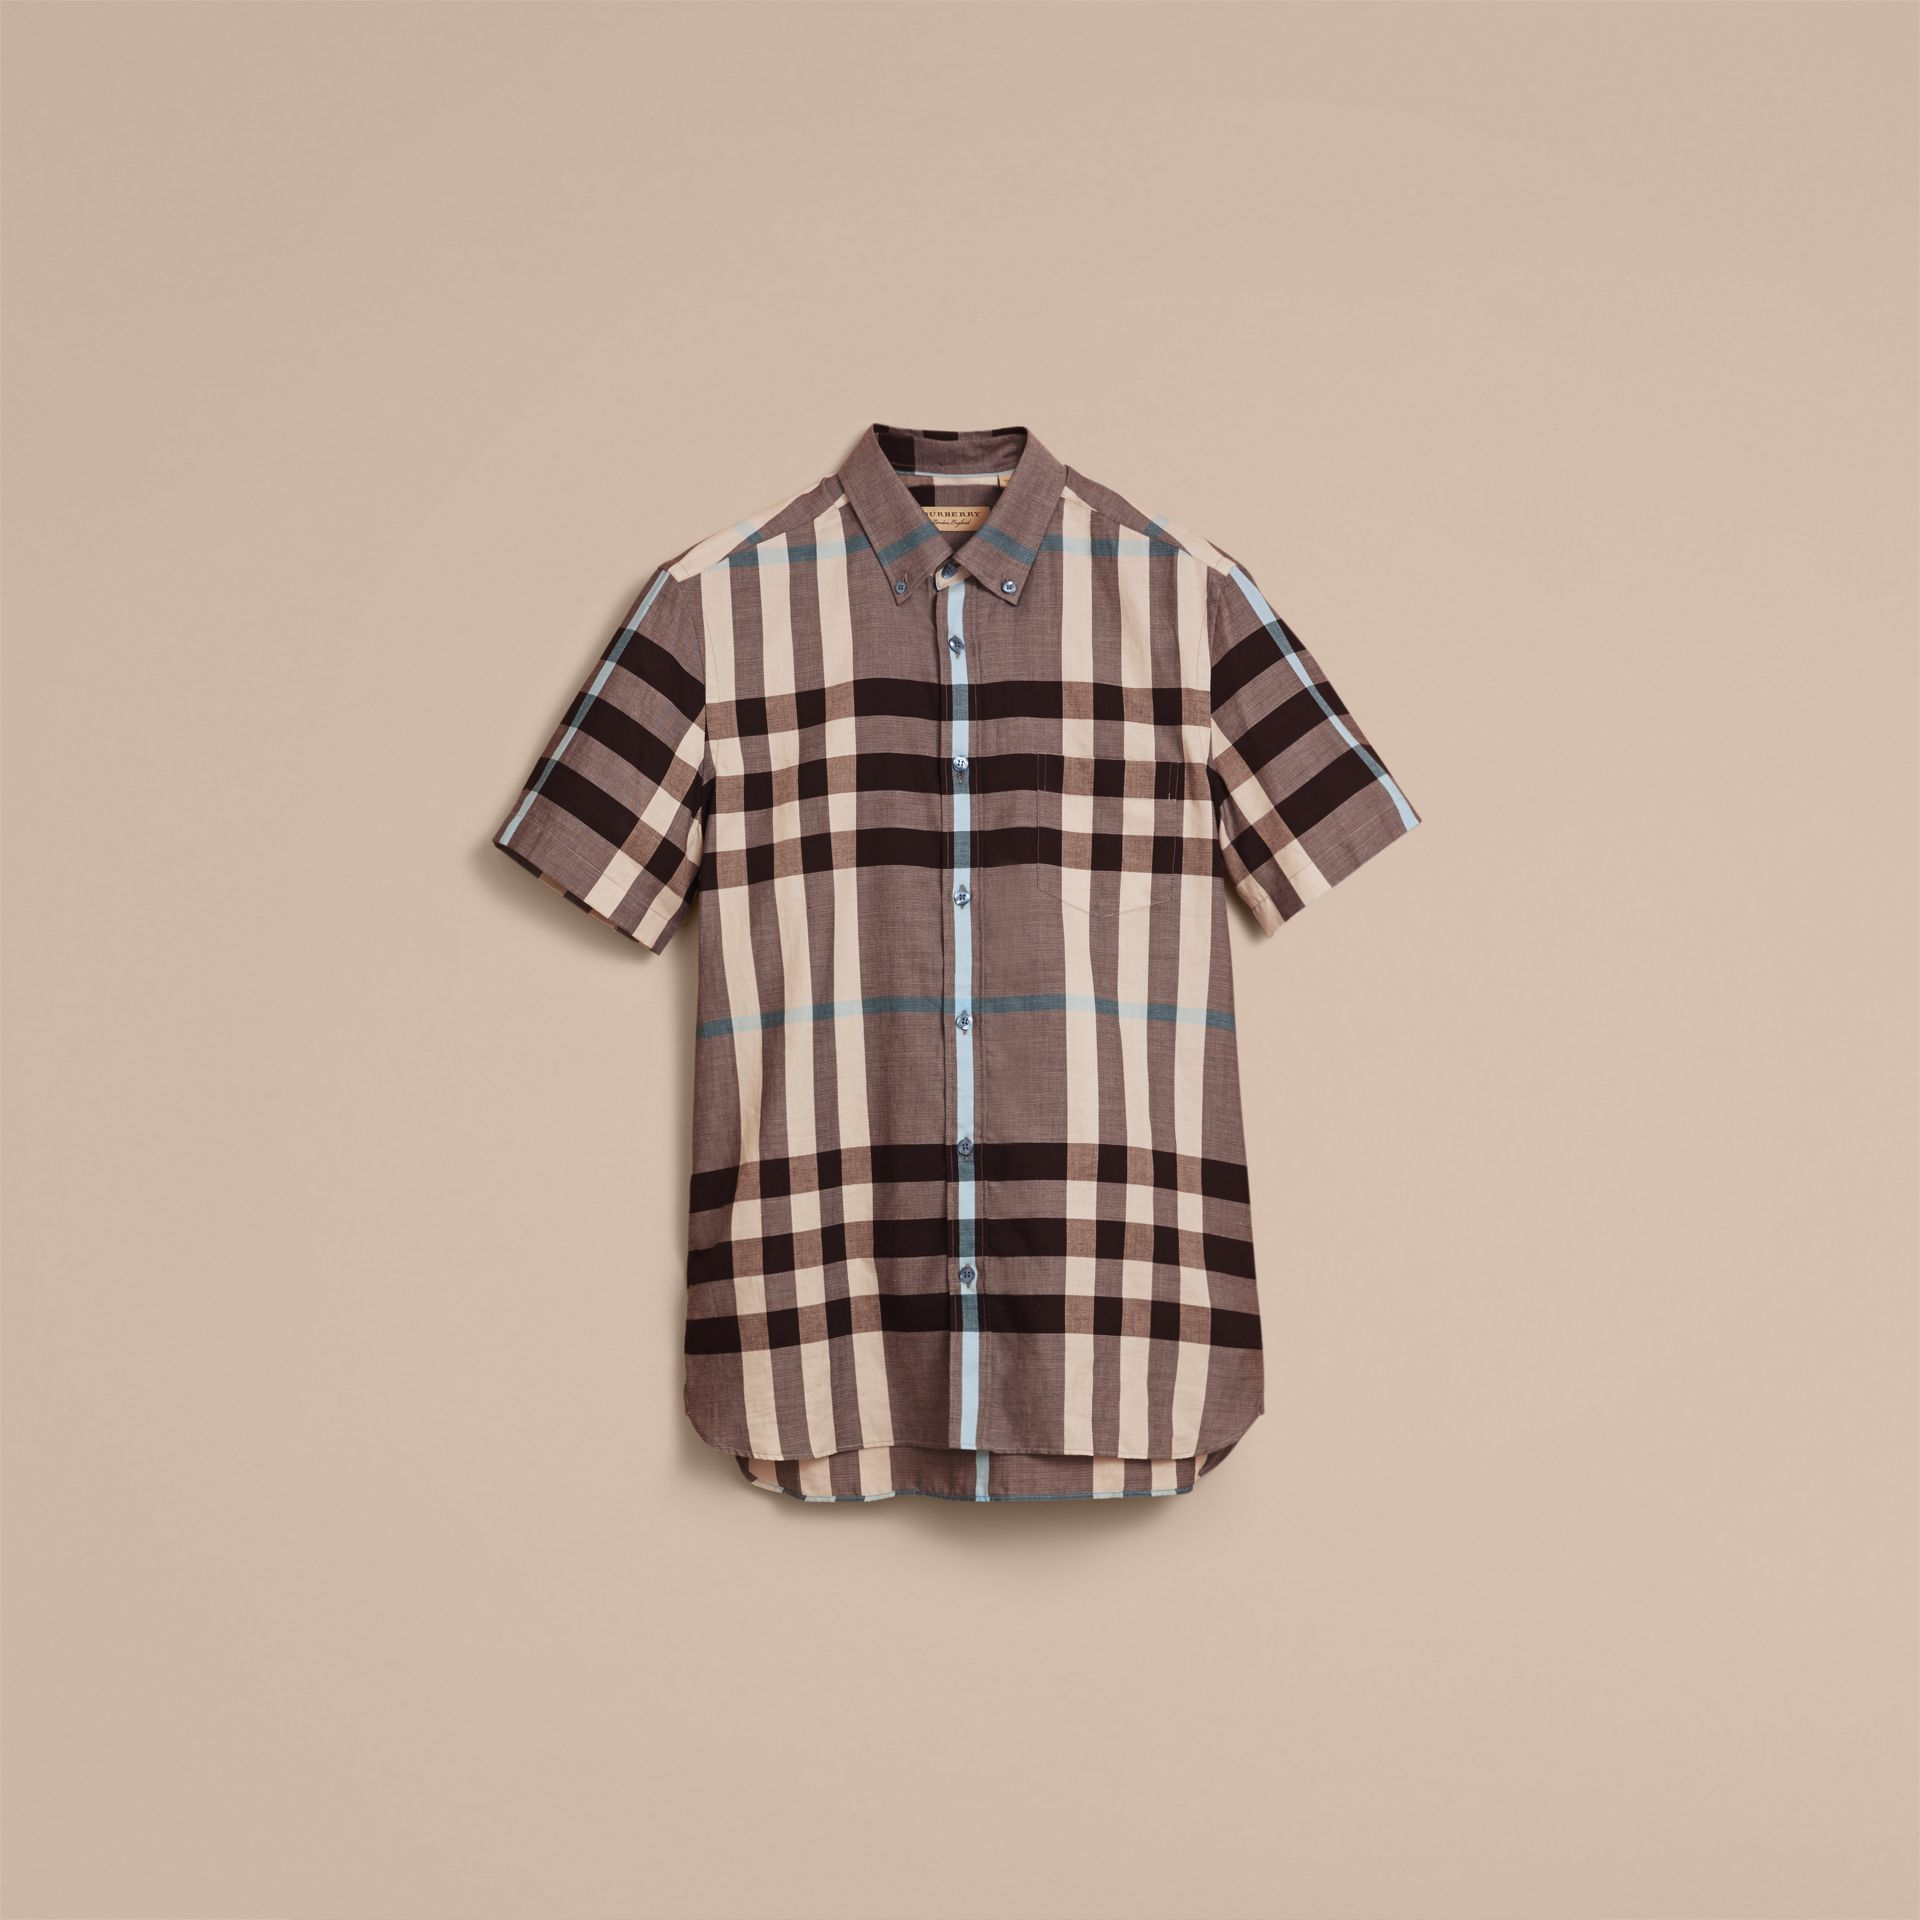 Button-down Collar Short-sleeve Check Cotton Shirt in Mist Grey - Men | Burberry - gallery image 3